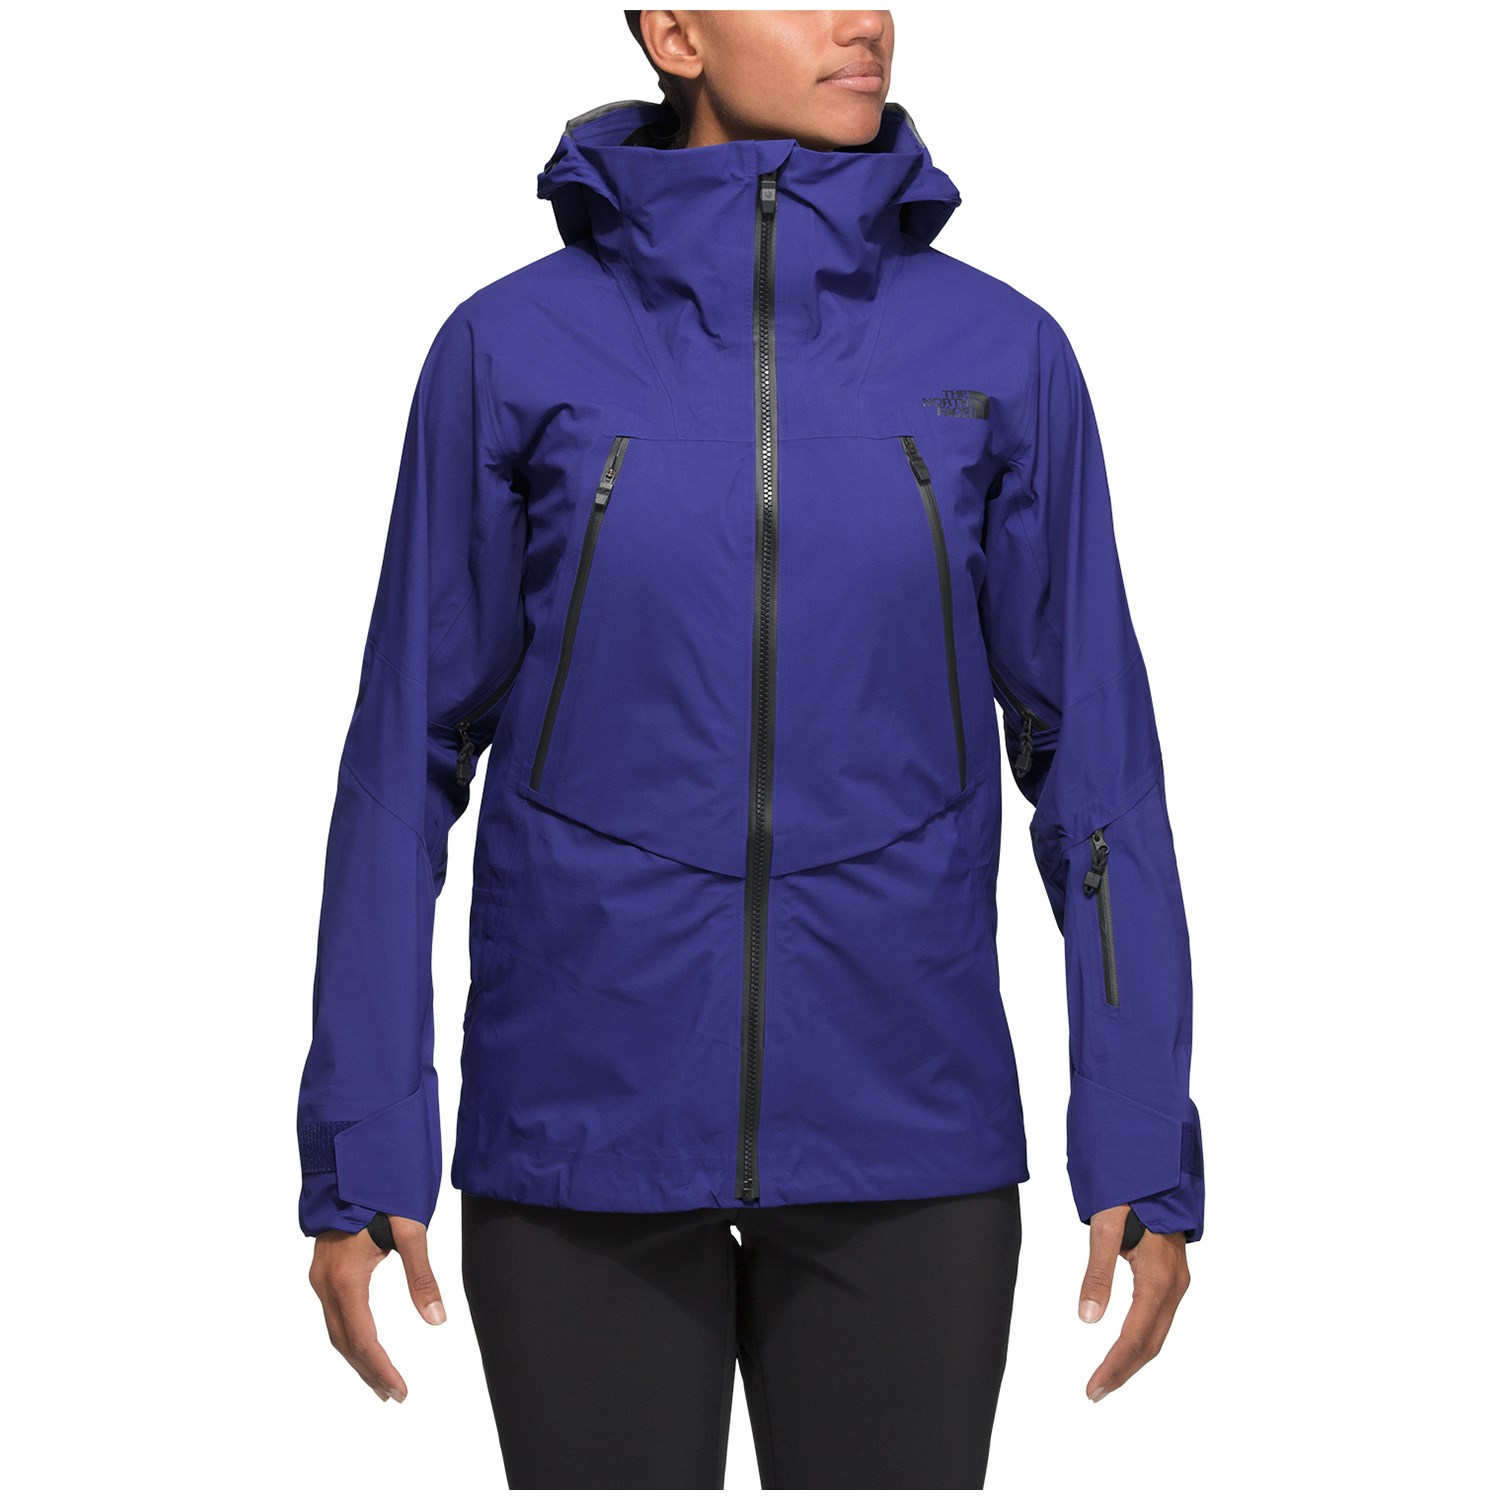 514c79496a06 The North Face Purist Triclimate® Jacket - Women s